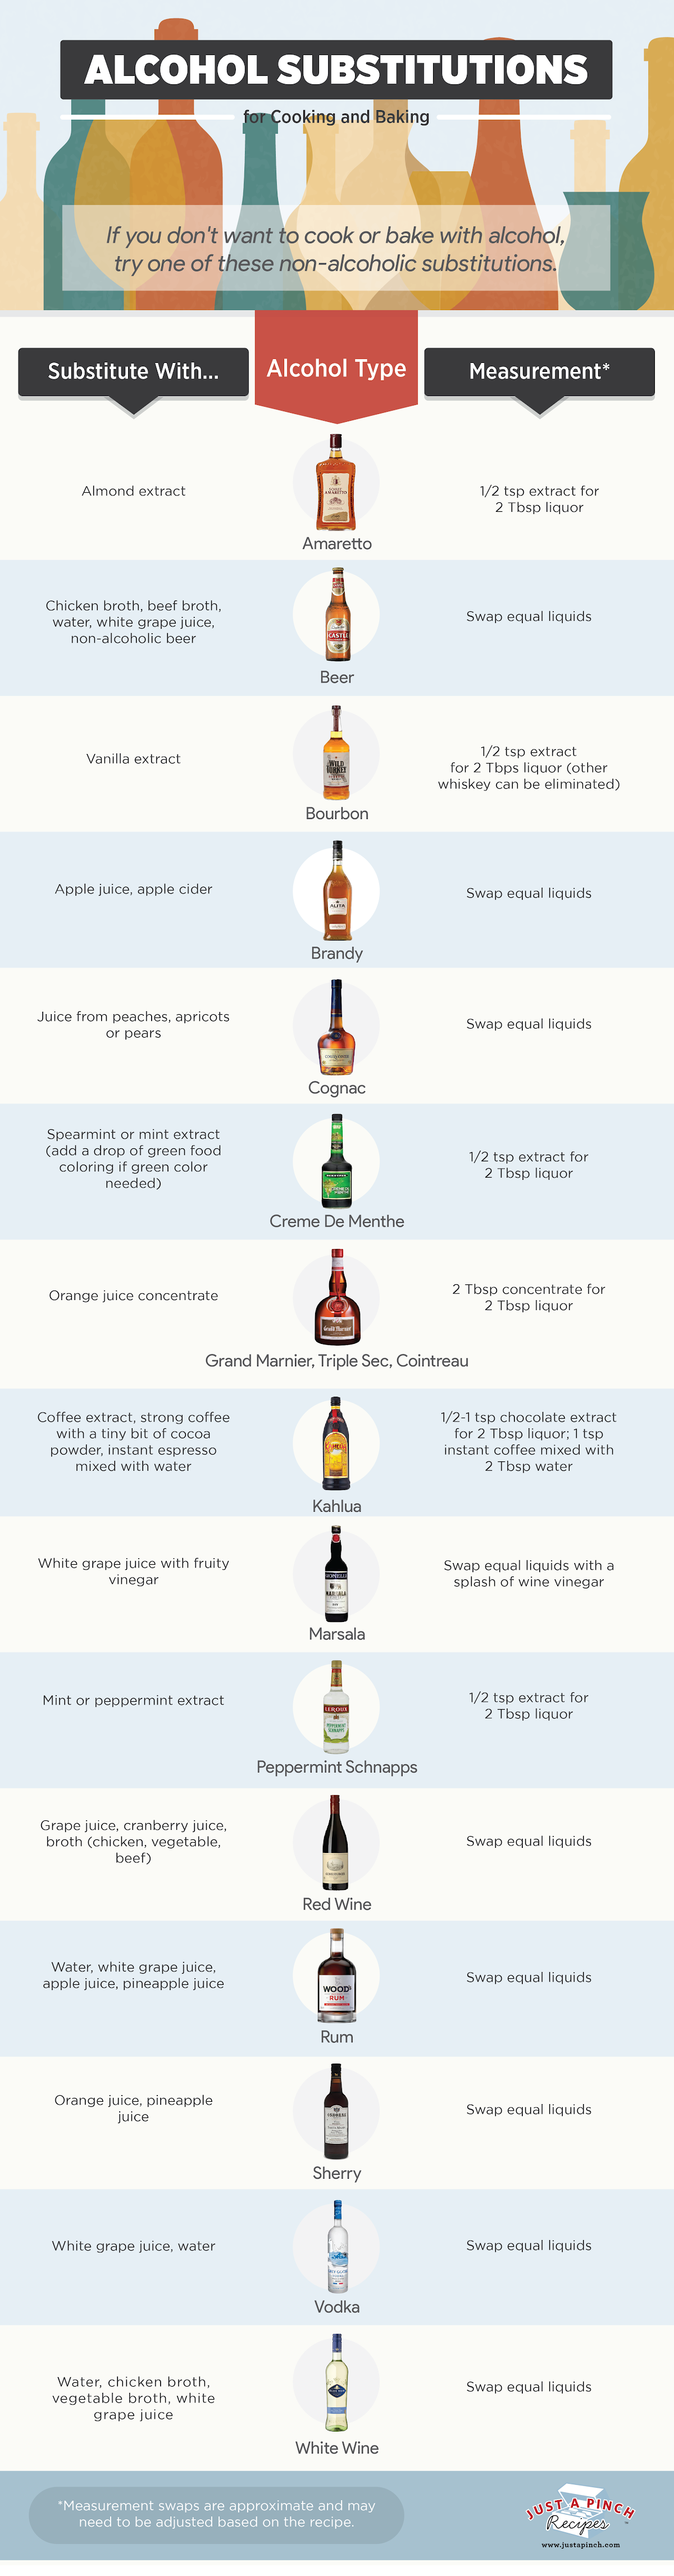 Alcohol Substitutions for Cooking and Baking